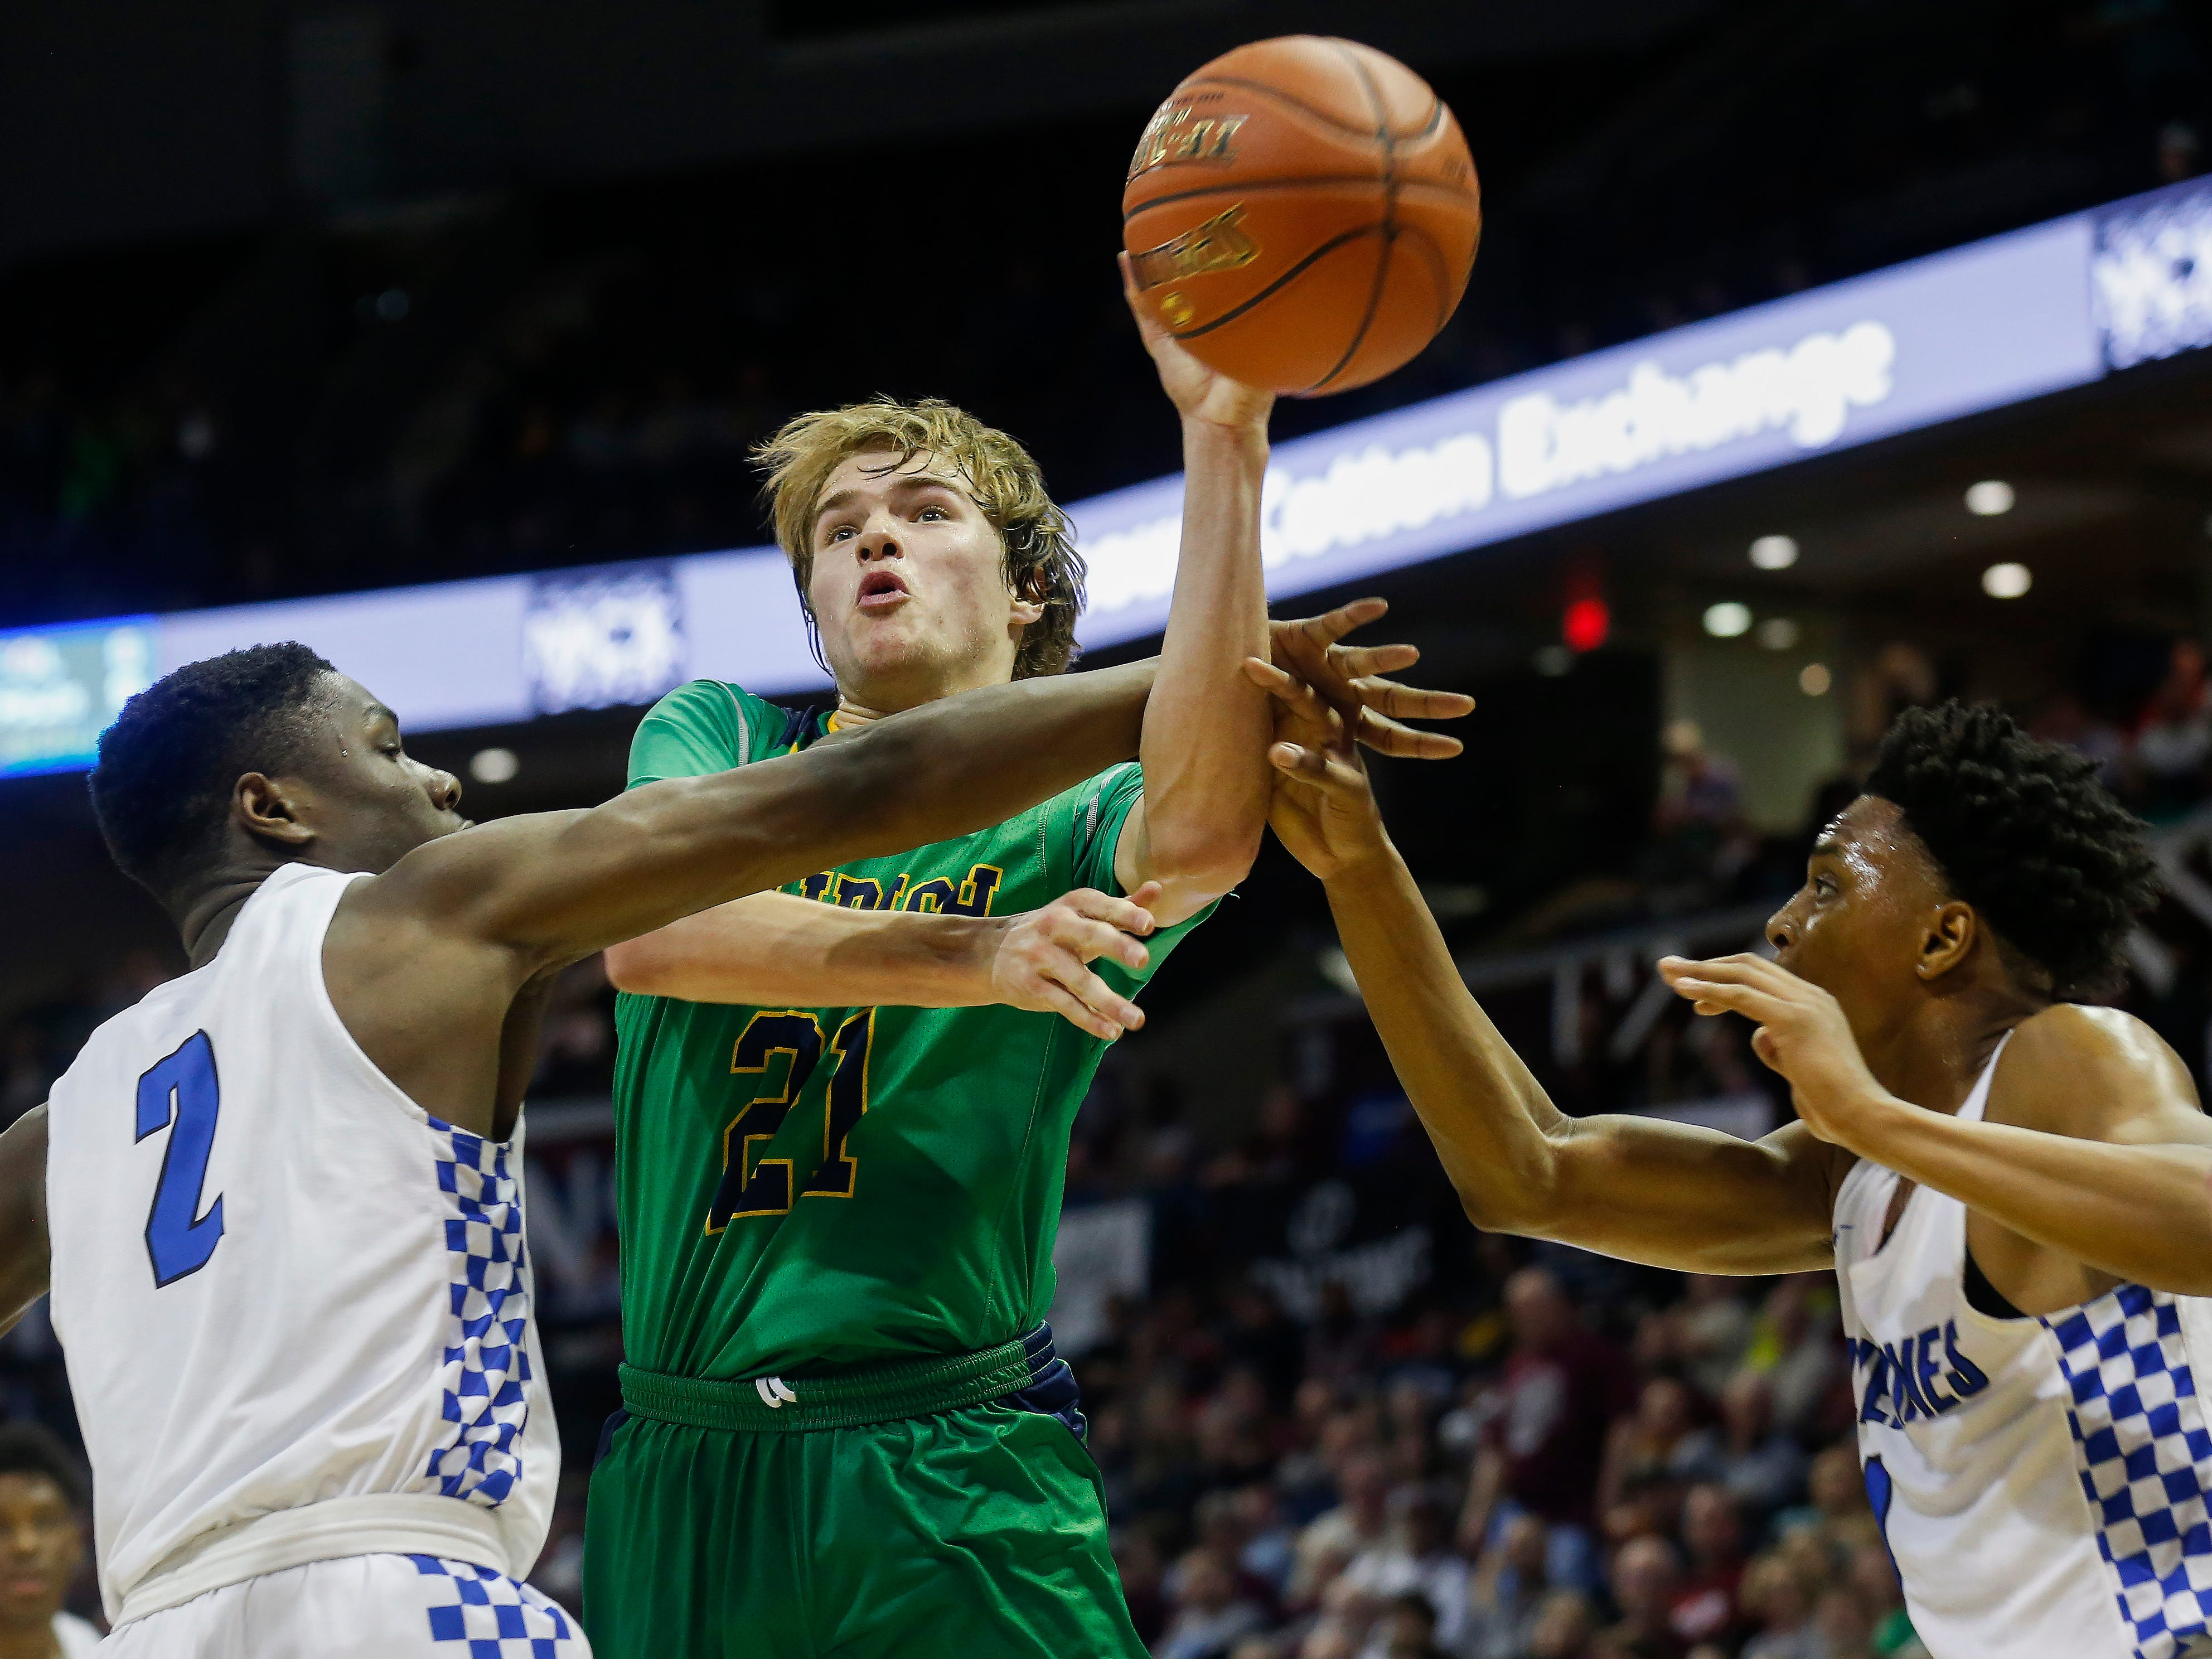 Charlie O'Reilly, of Springfield Catholic, is fouled during the Irish's 69-59 loss to Vashon in the Class 3 state championship game at JQH Arena on Friday, March 8, 2019.